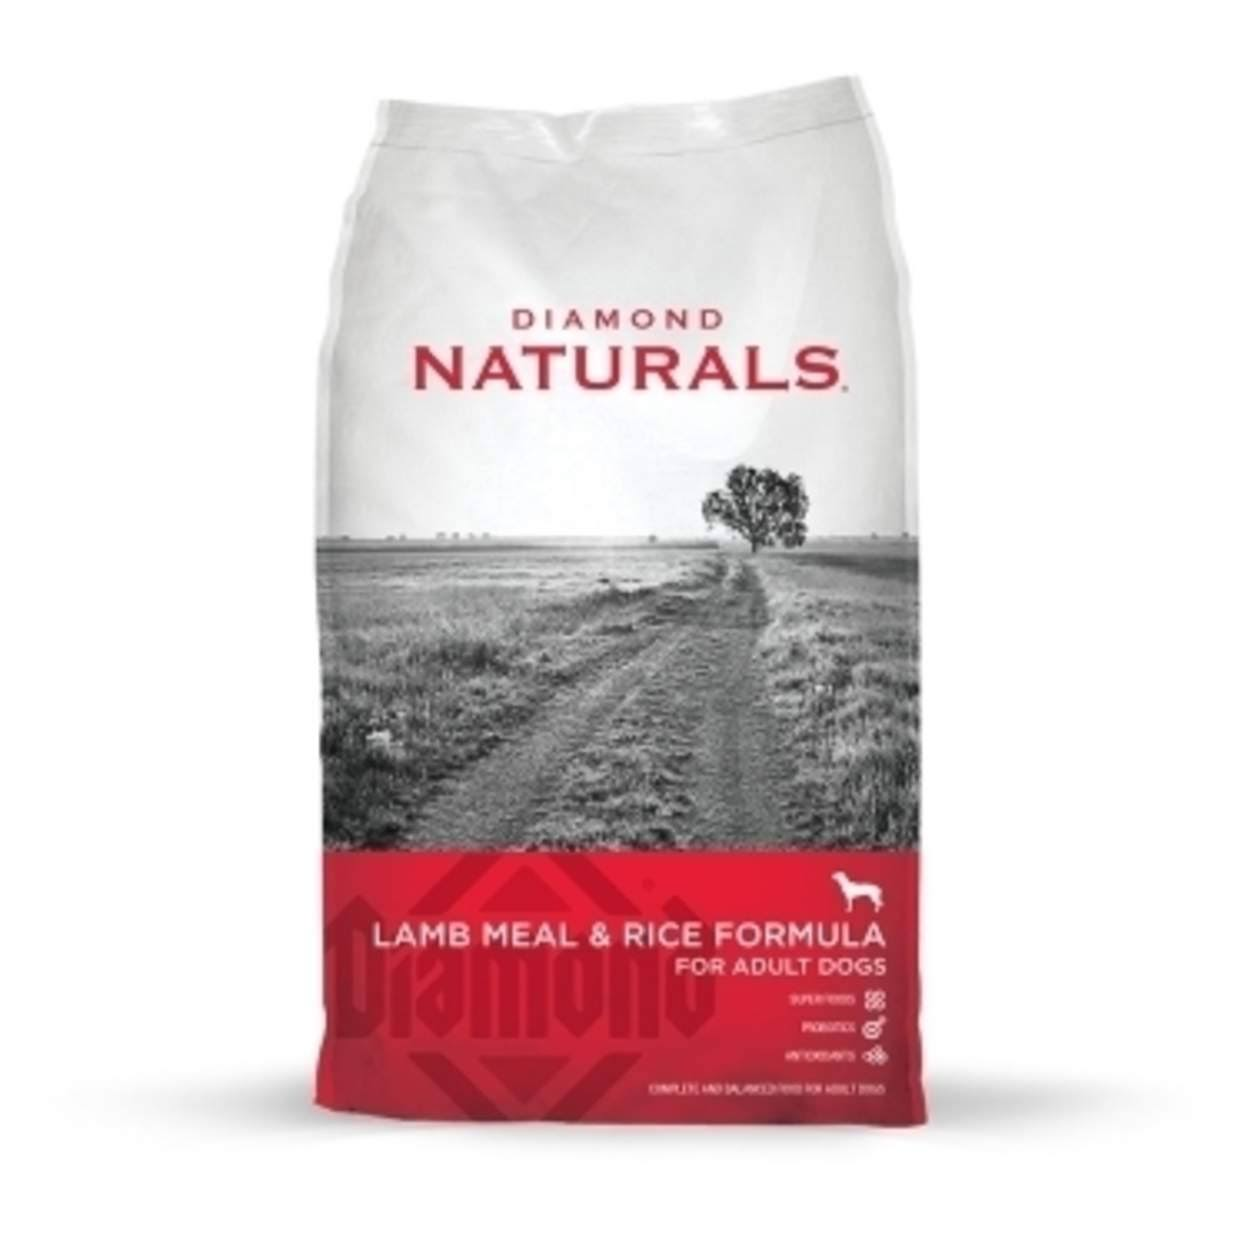 Diamond Naturals Dry Food for Adult Dogs - Lamb and Rice Formula